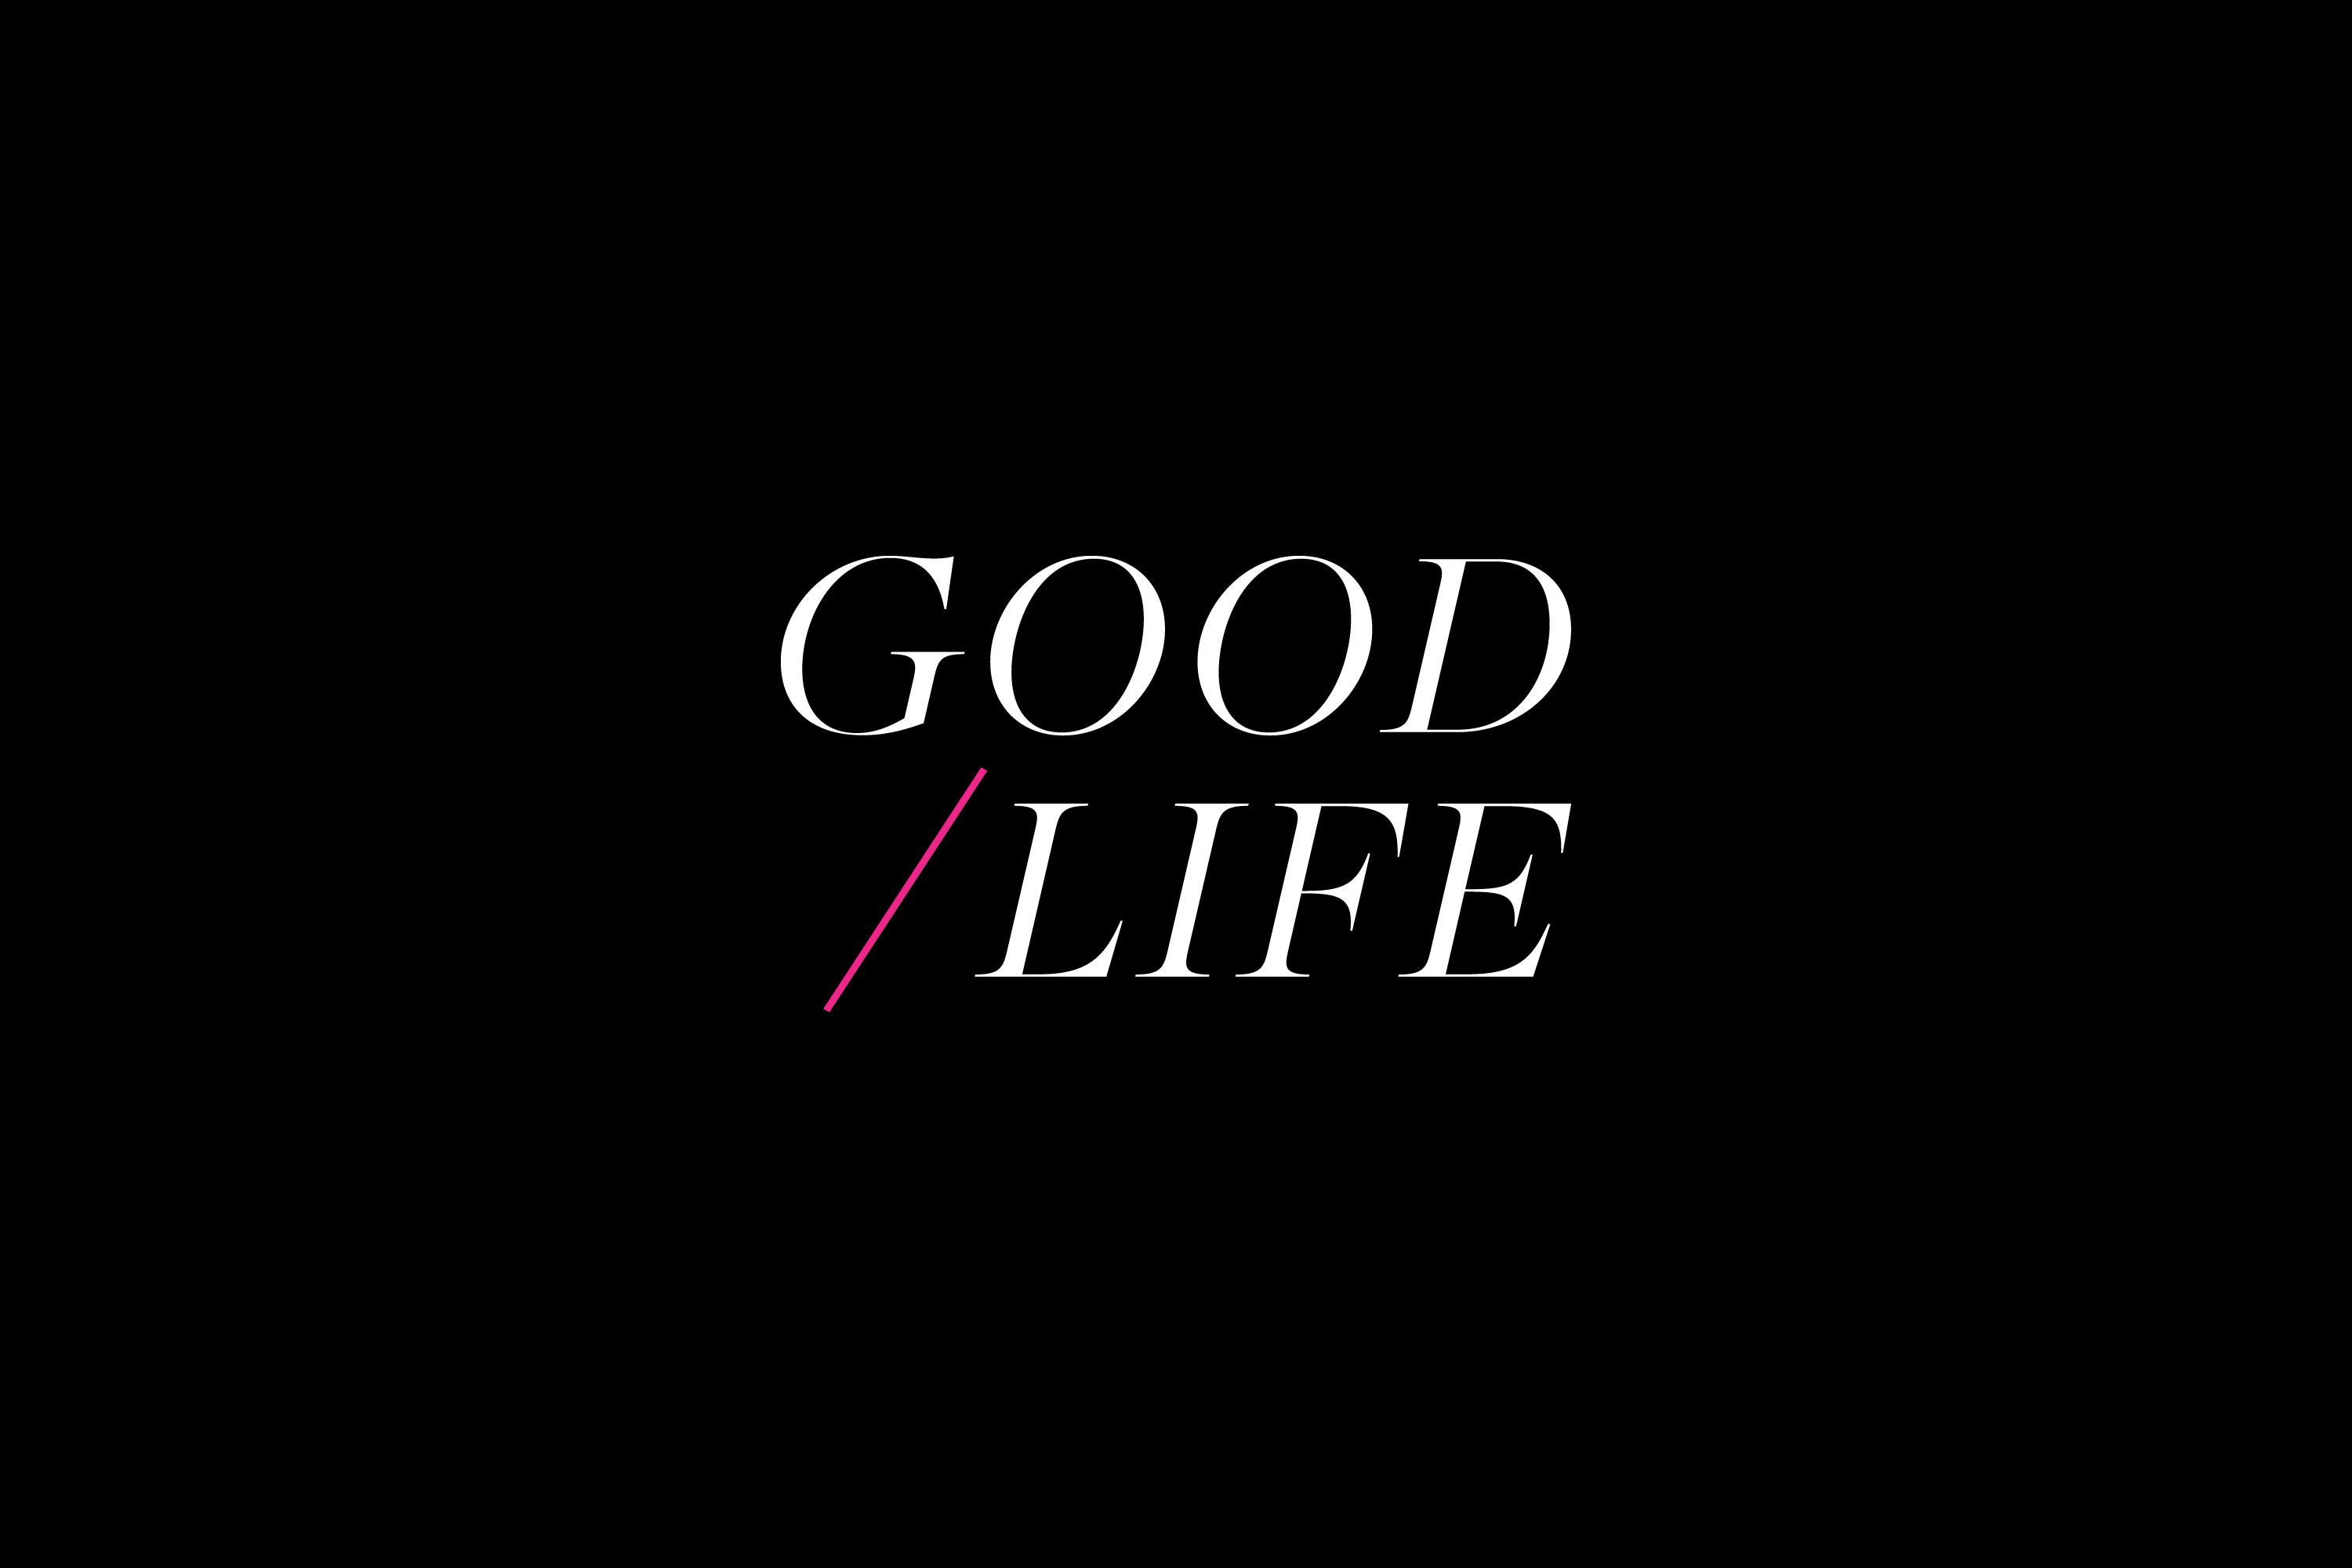 Good Life - Noirve Design